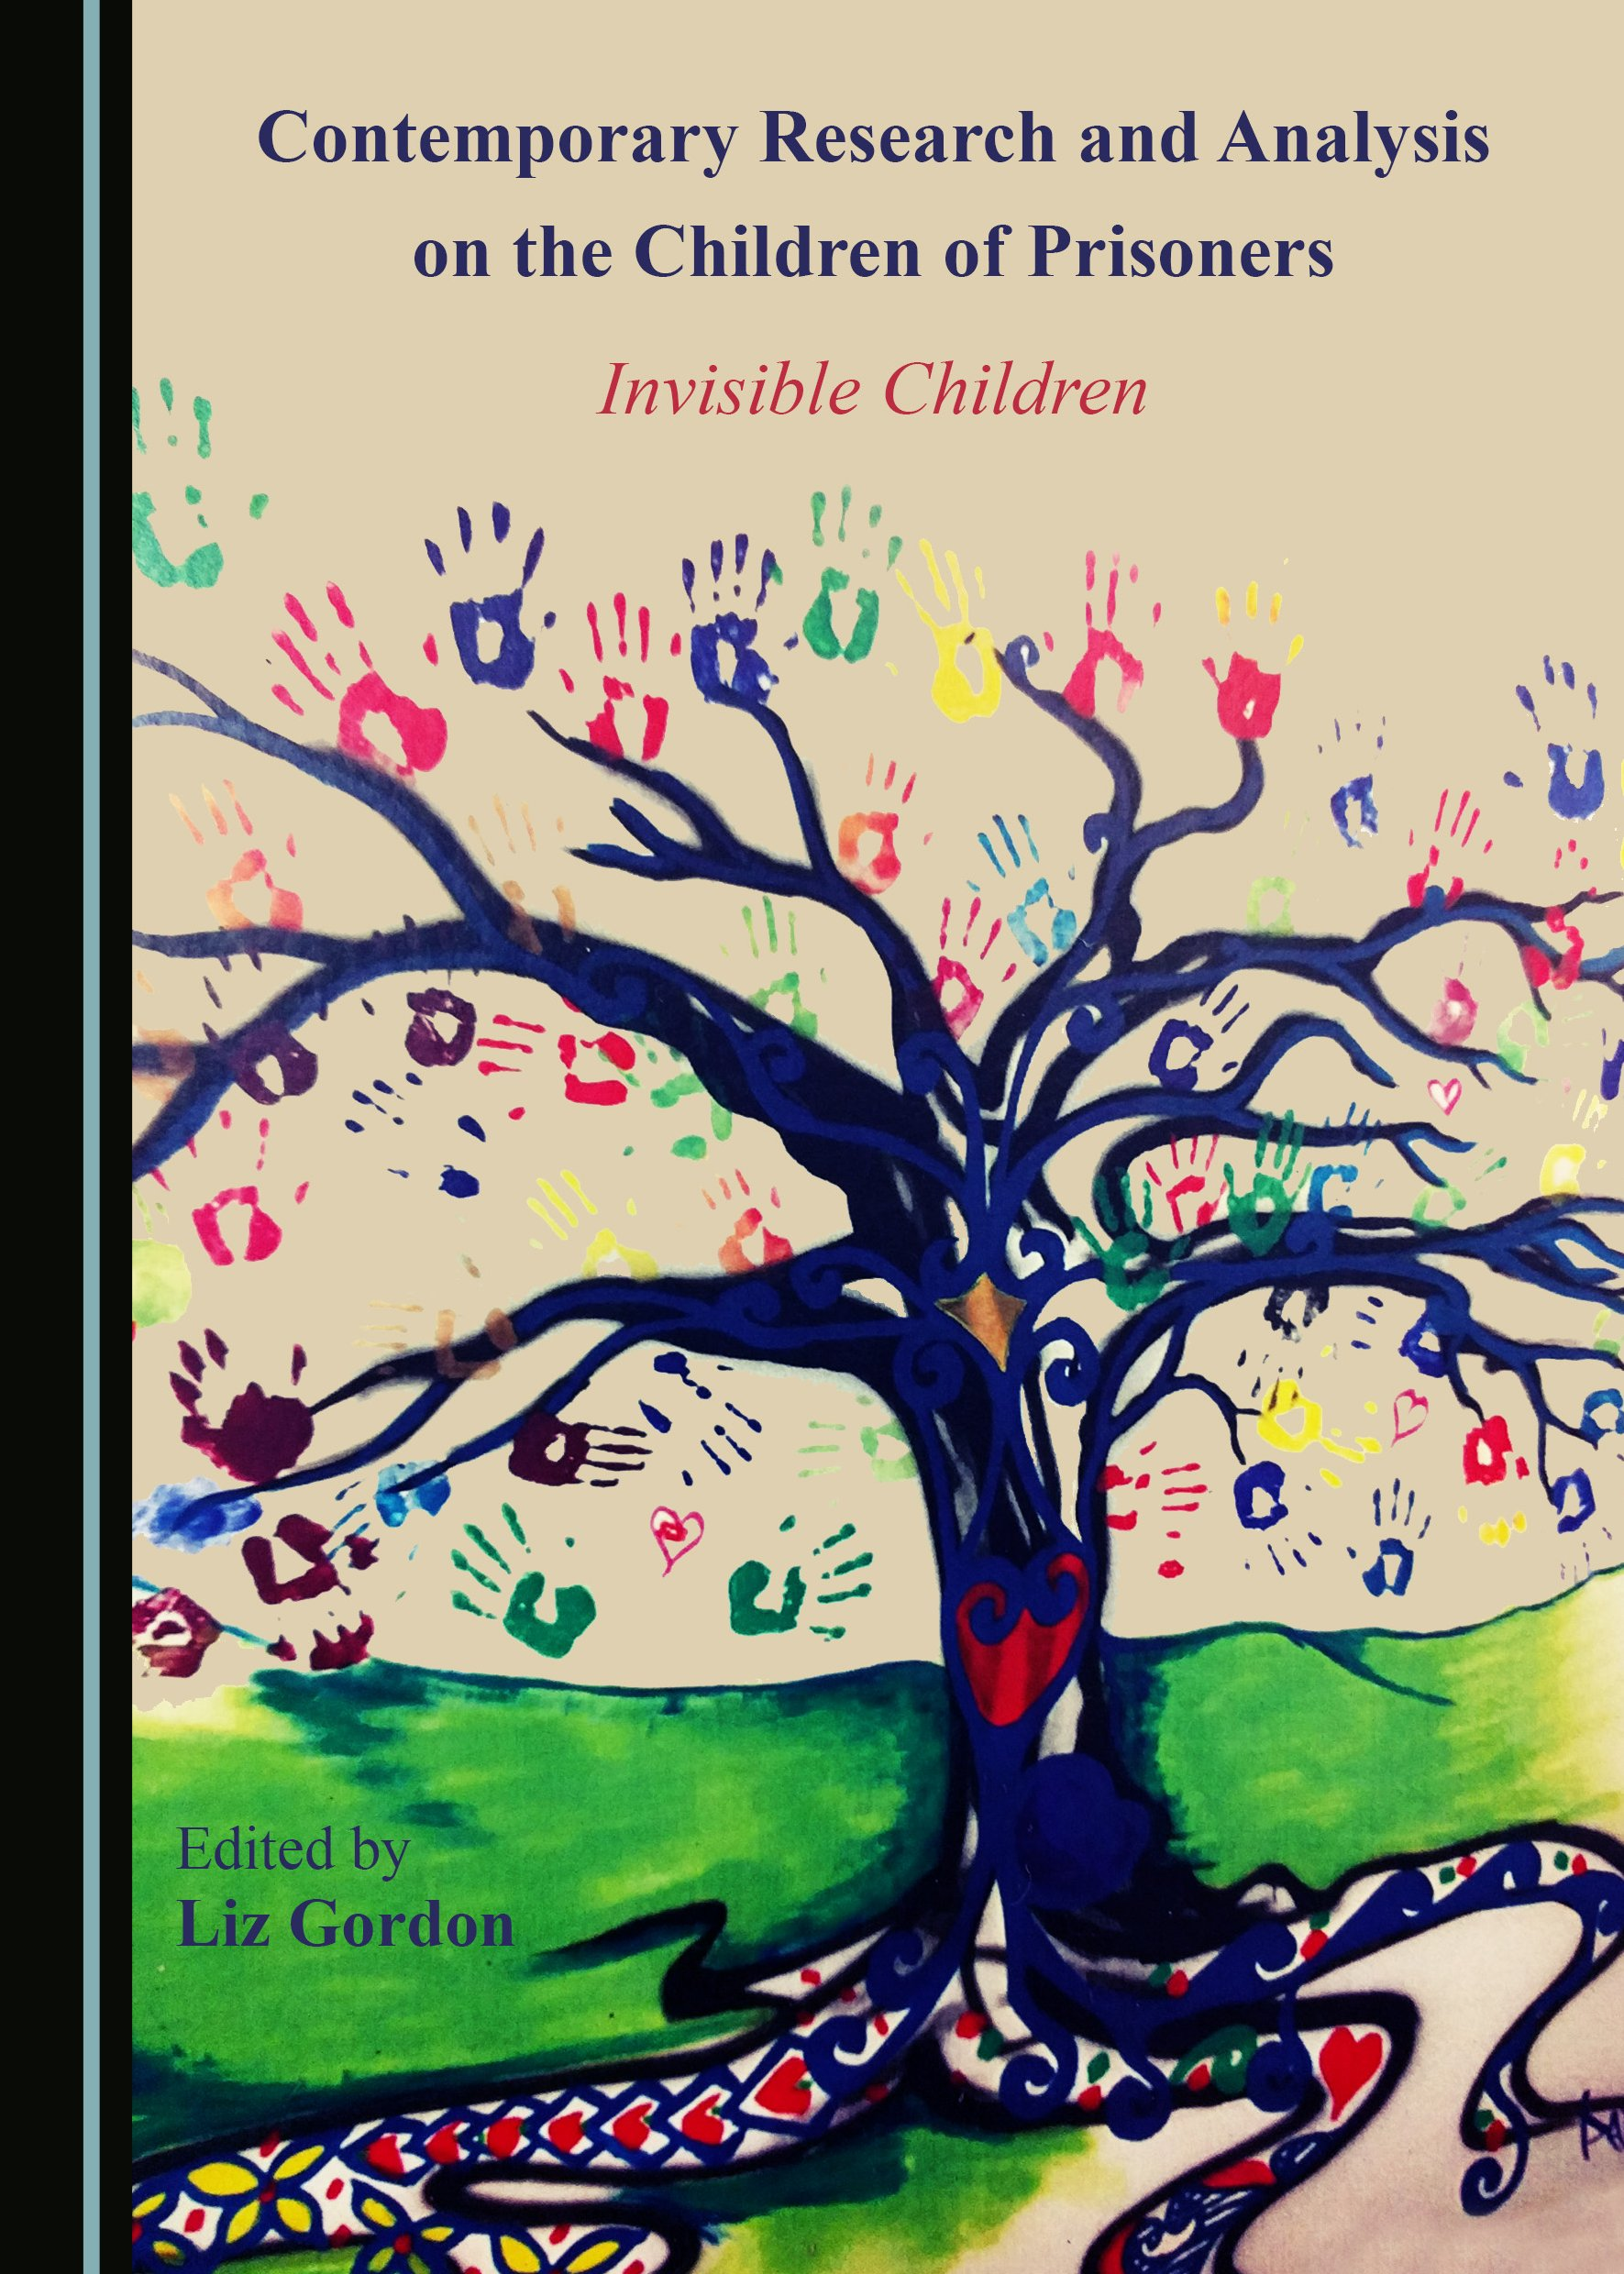 Contemporary Research and Analysis on the Children of Prisoners: Invisible Children